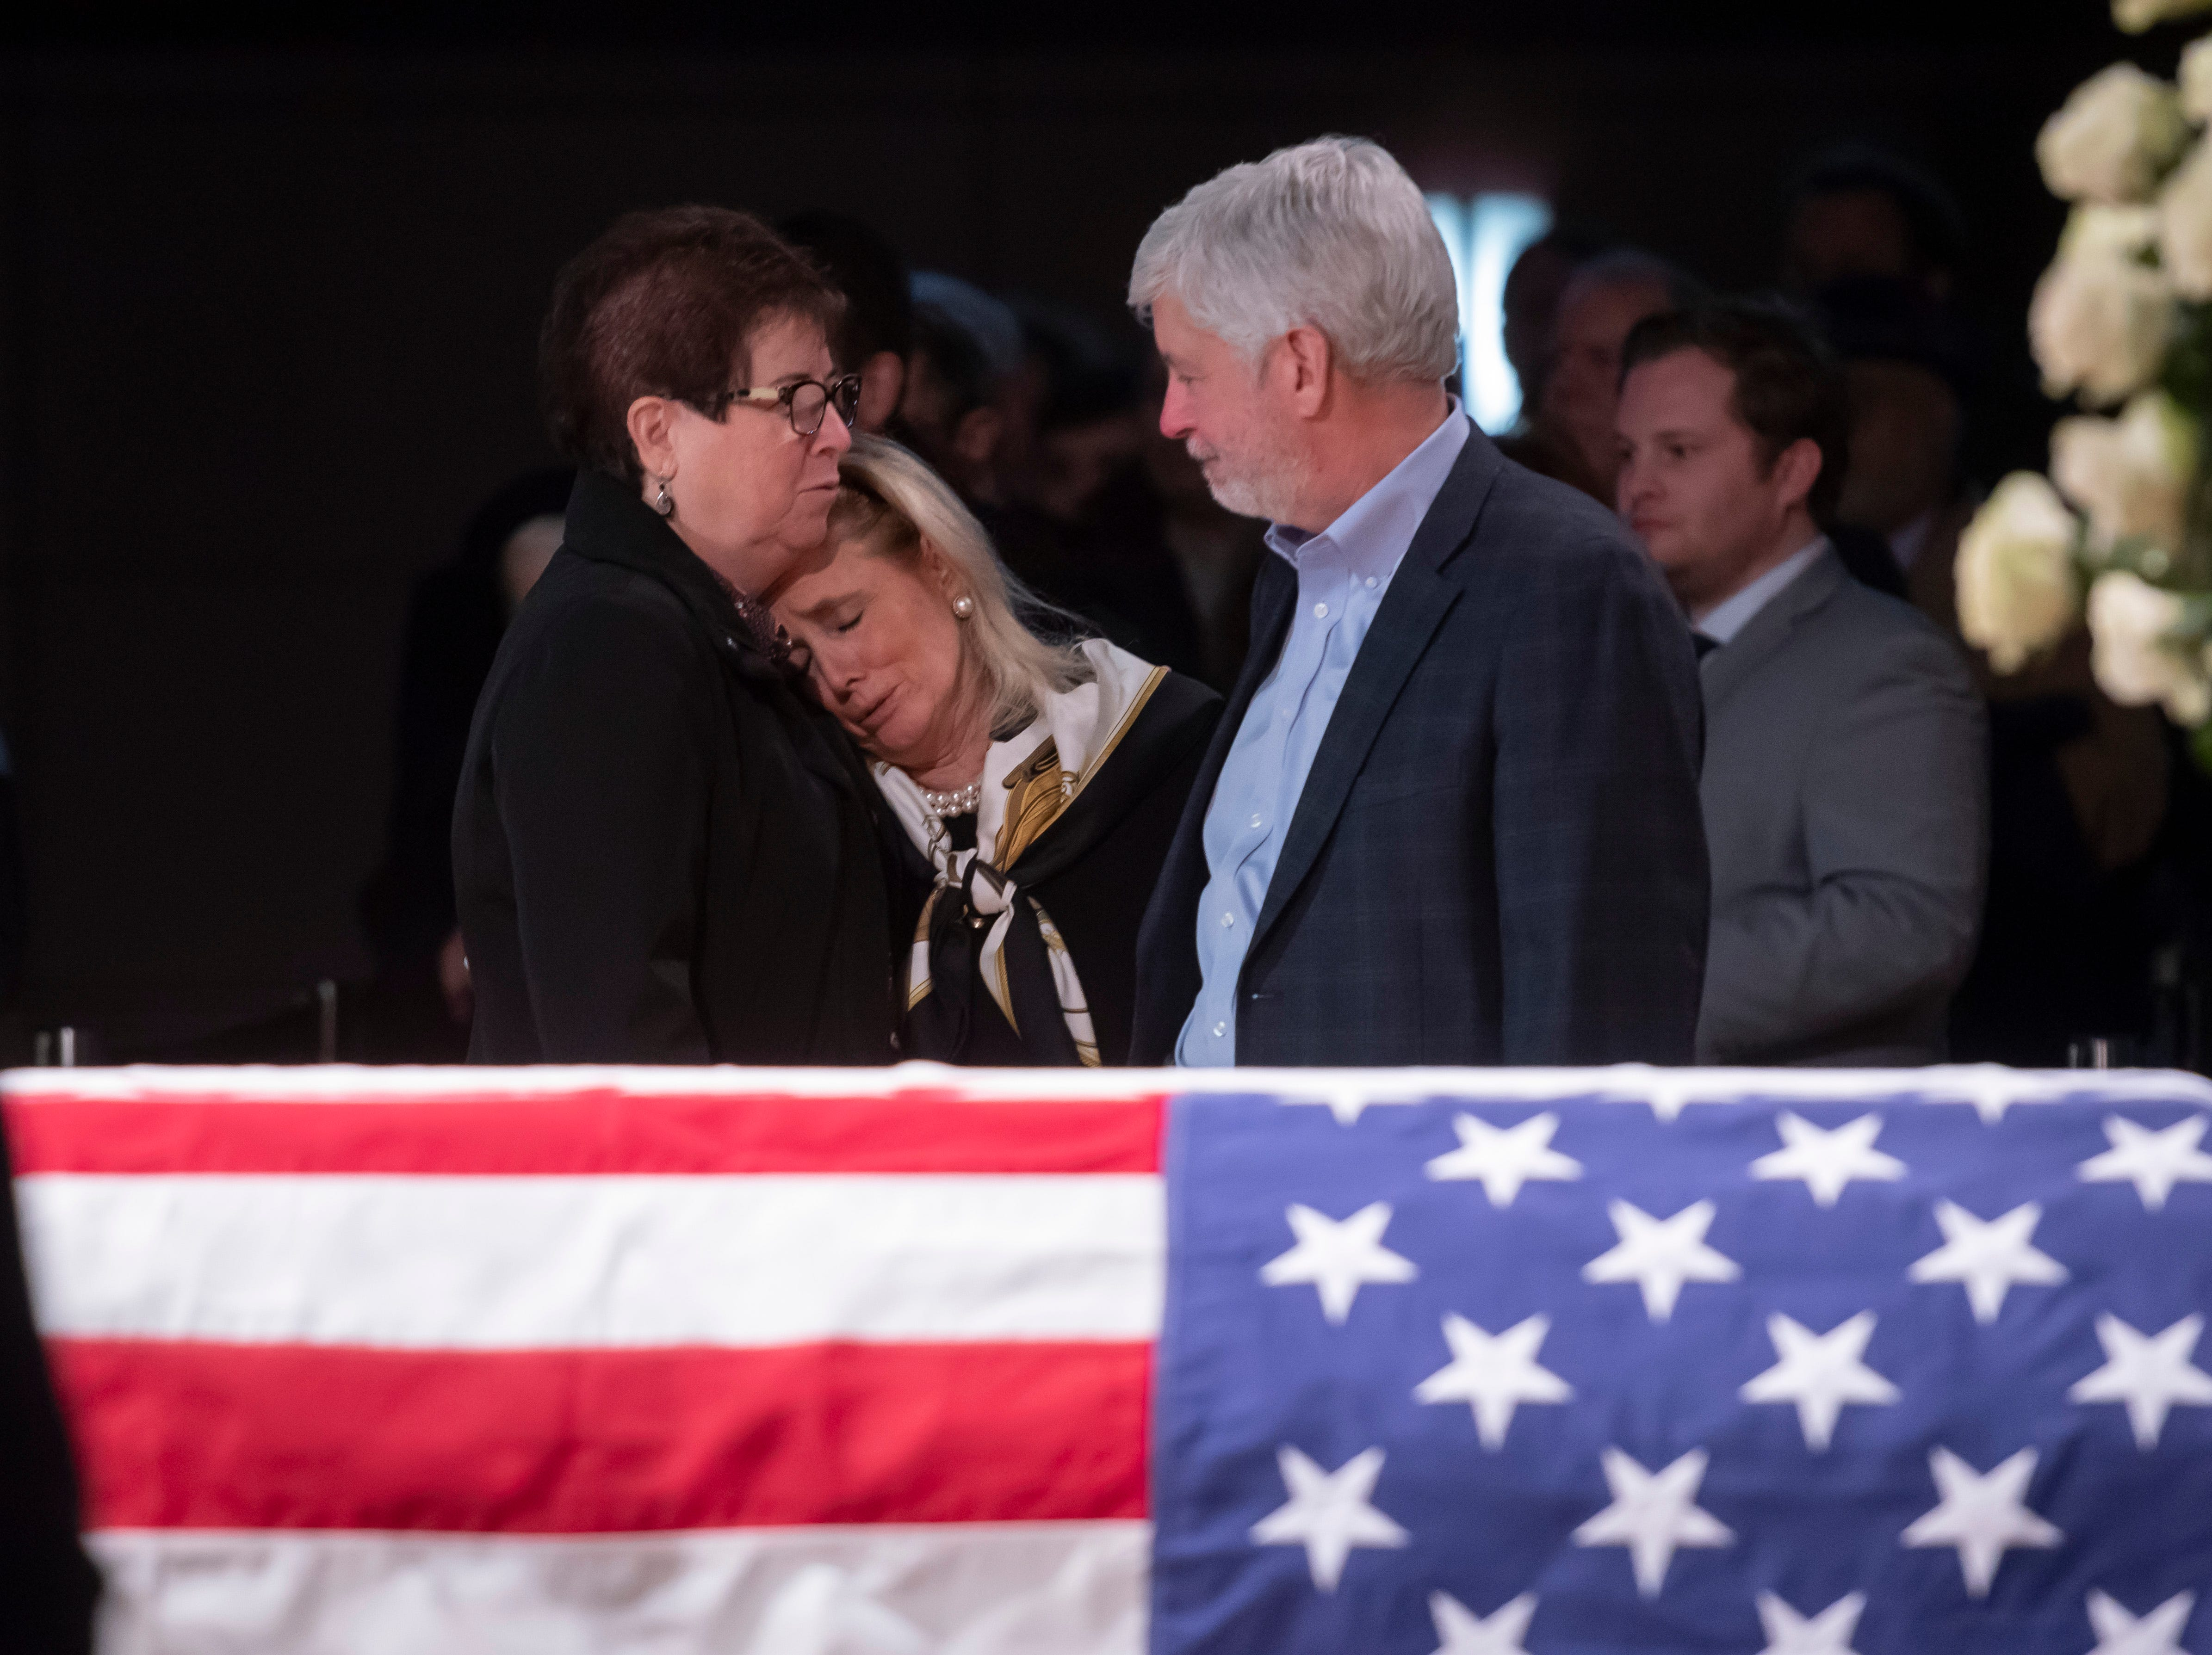 U.S. Rep. Debbie Dingell, center, is consoled by former Michigan Governor Rick Snyder, right, and his wife Sue during the  visitation for her husband, former U.S. Rep. John Dingell at the Ford Community and Performing Arts Center, in Dearborn, February 11, 2019.